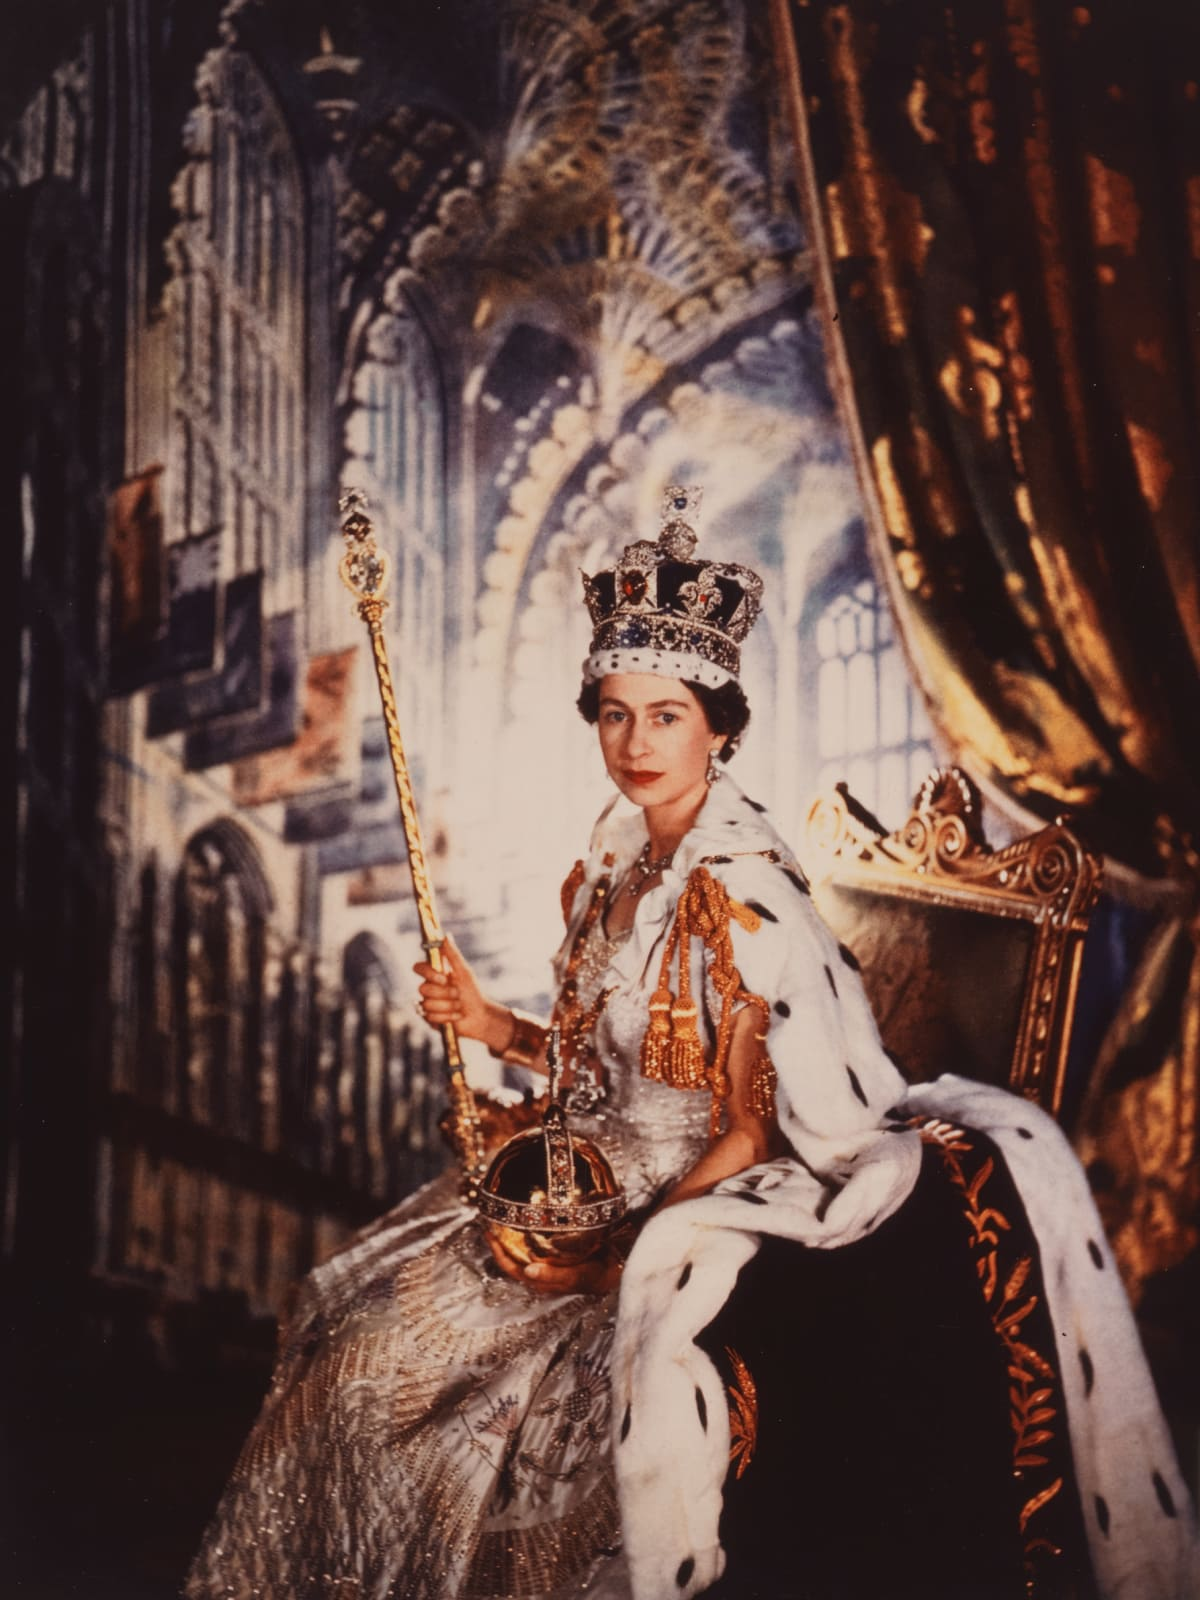 MFAH Tudors to Windsors, Cecil Beaton, Queen Elizabeth II